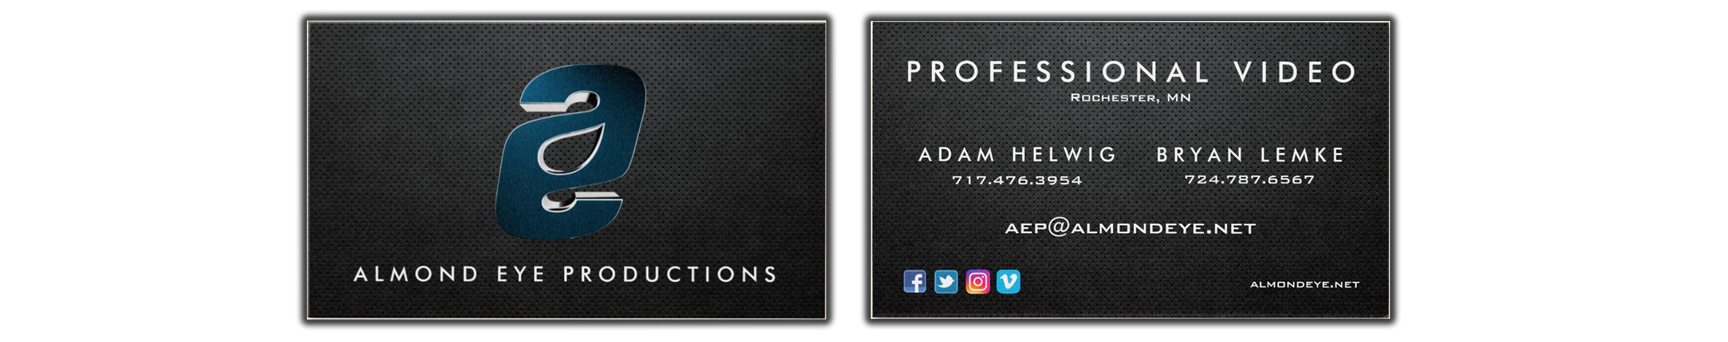 CLICK THE BUSINESS CARD TO SEND US AN EMAIL